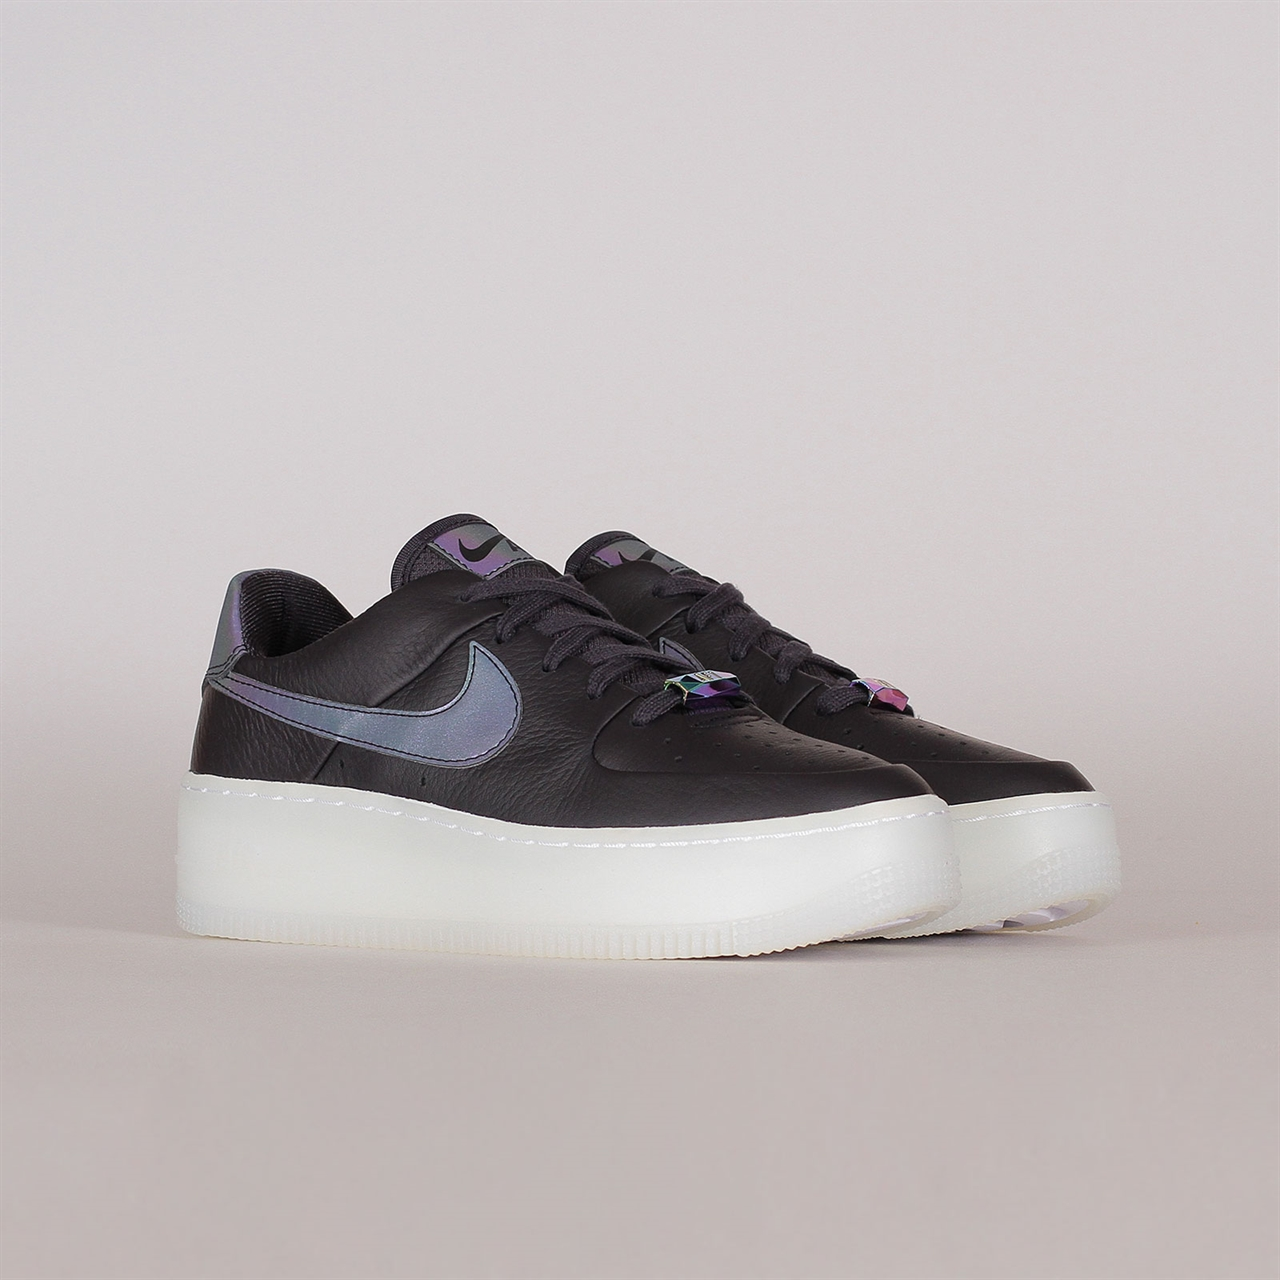 Air Force 1 Sage Low Women's Shoe | Nike air force, Nike air